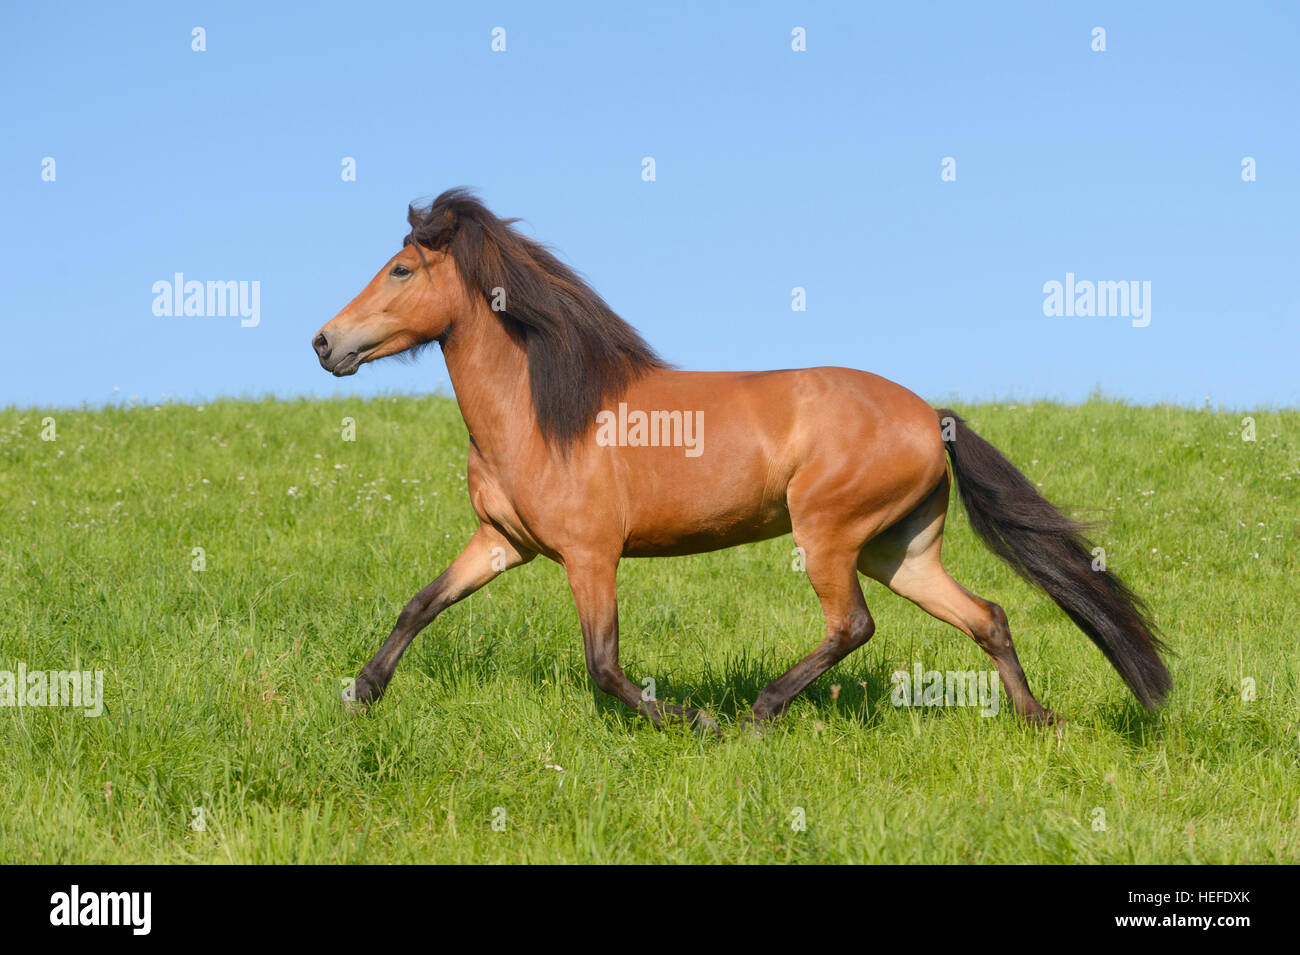 Icelandic horse in the field - Stock Image